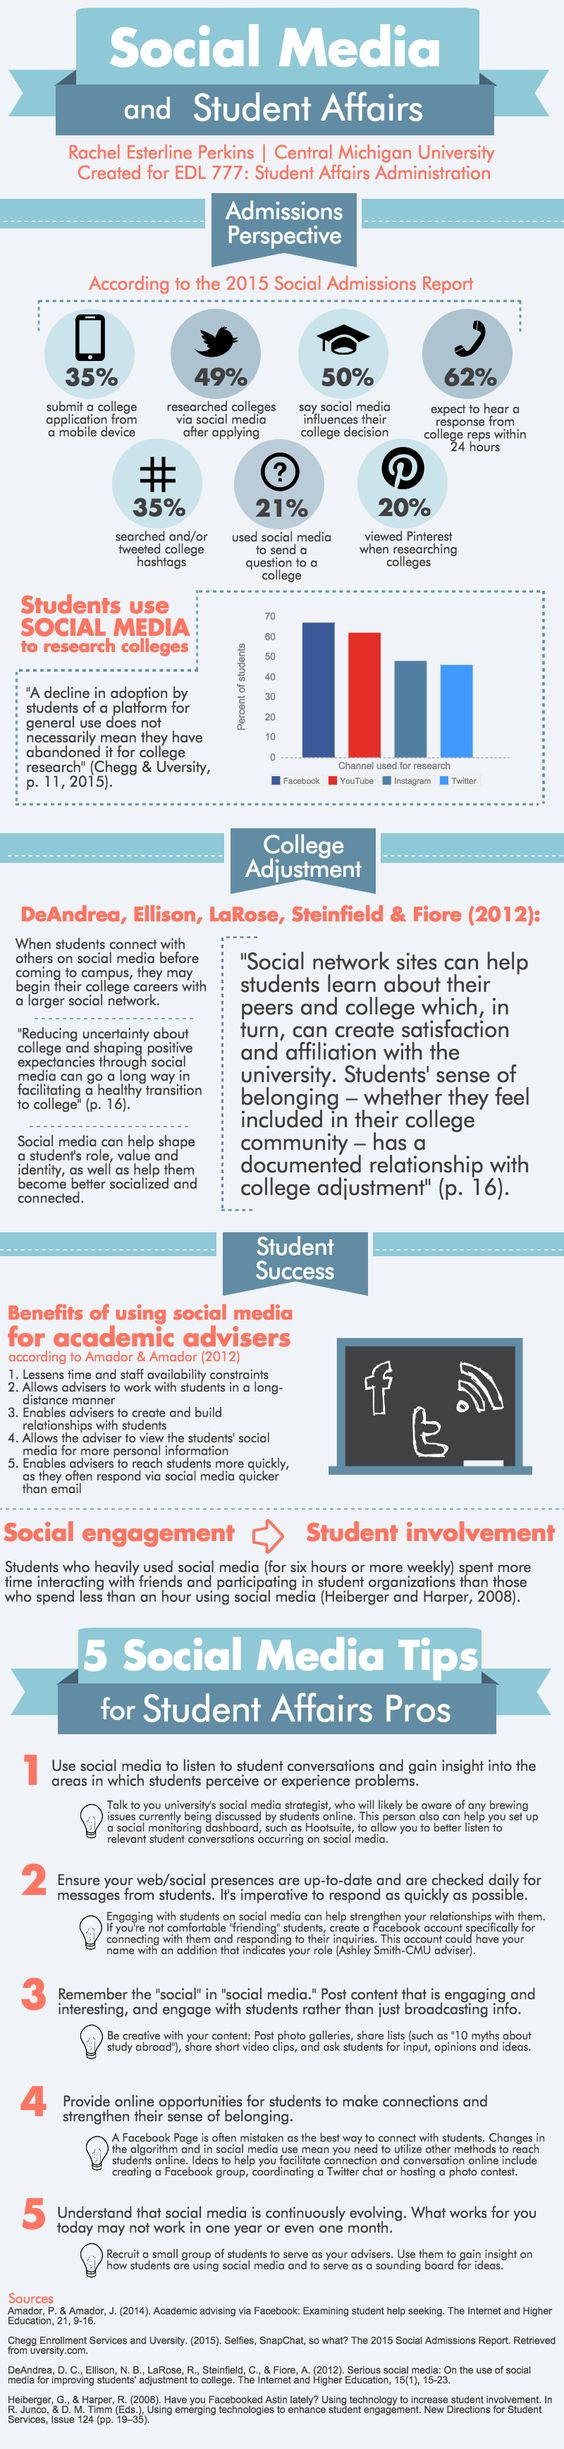 Student Affairs and Social Media